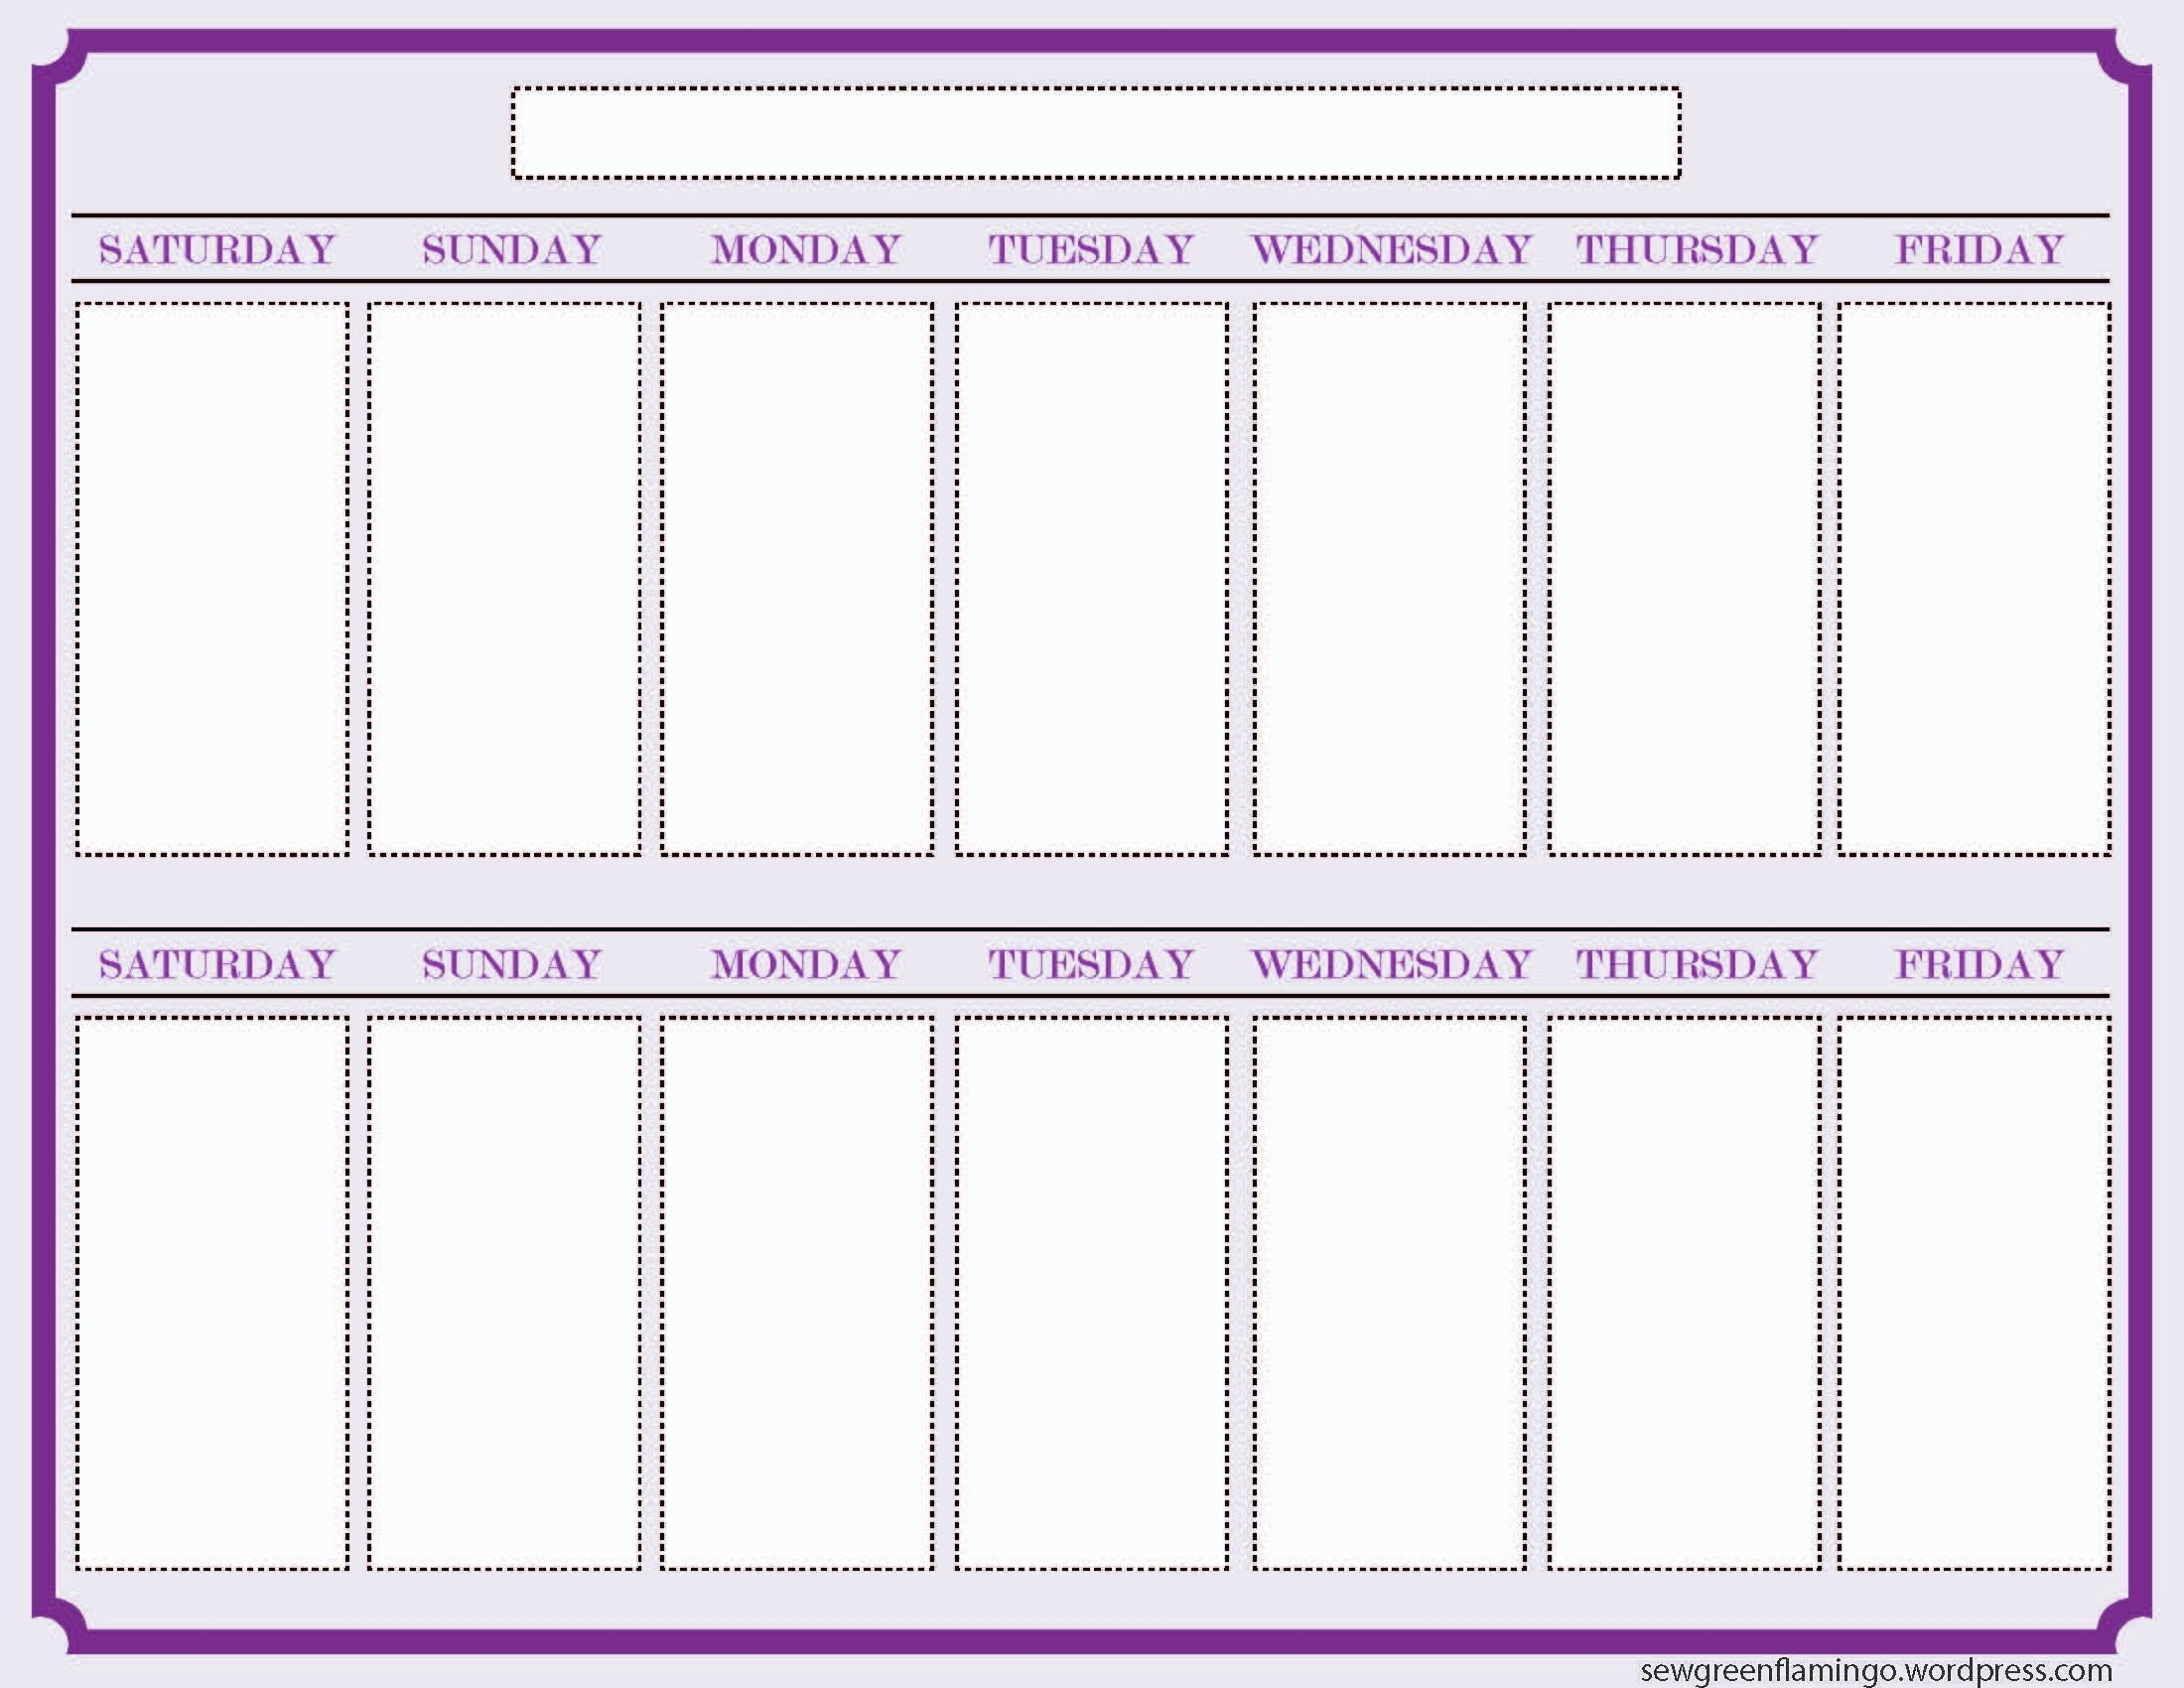 Attractive Weekly Blank Calendar Template Sample : V-M-D